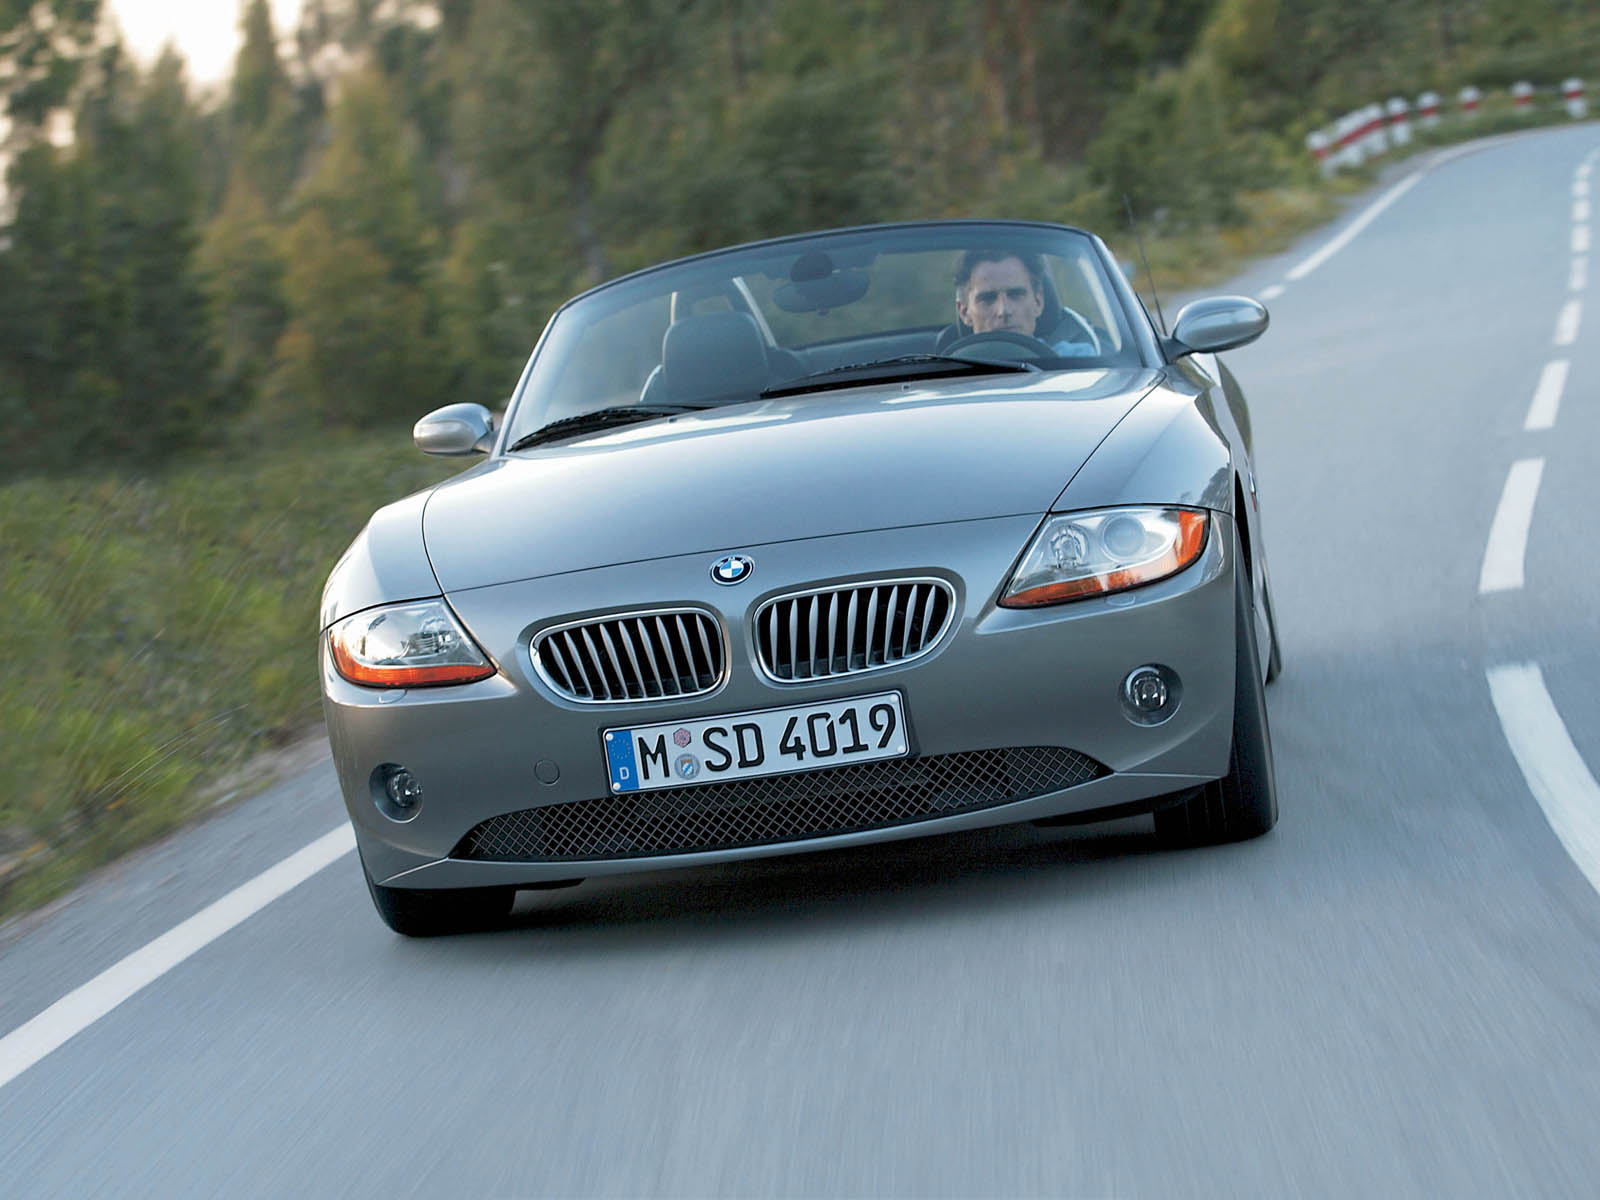 Bmw Z4 Photos Photogallery With 269 Pics Carsbase Com